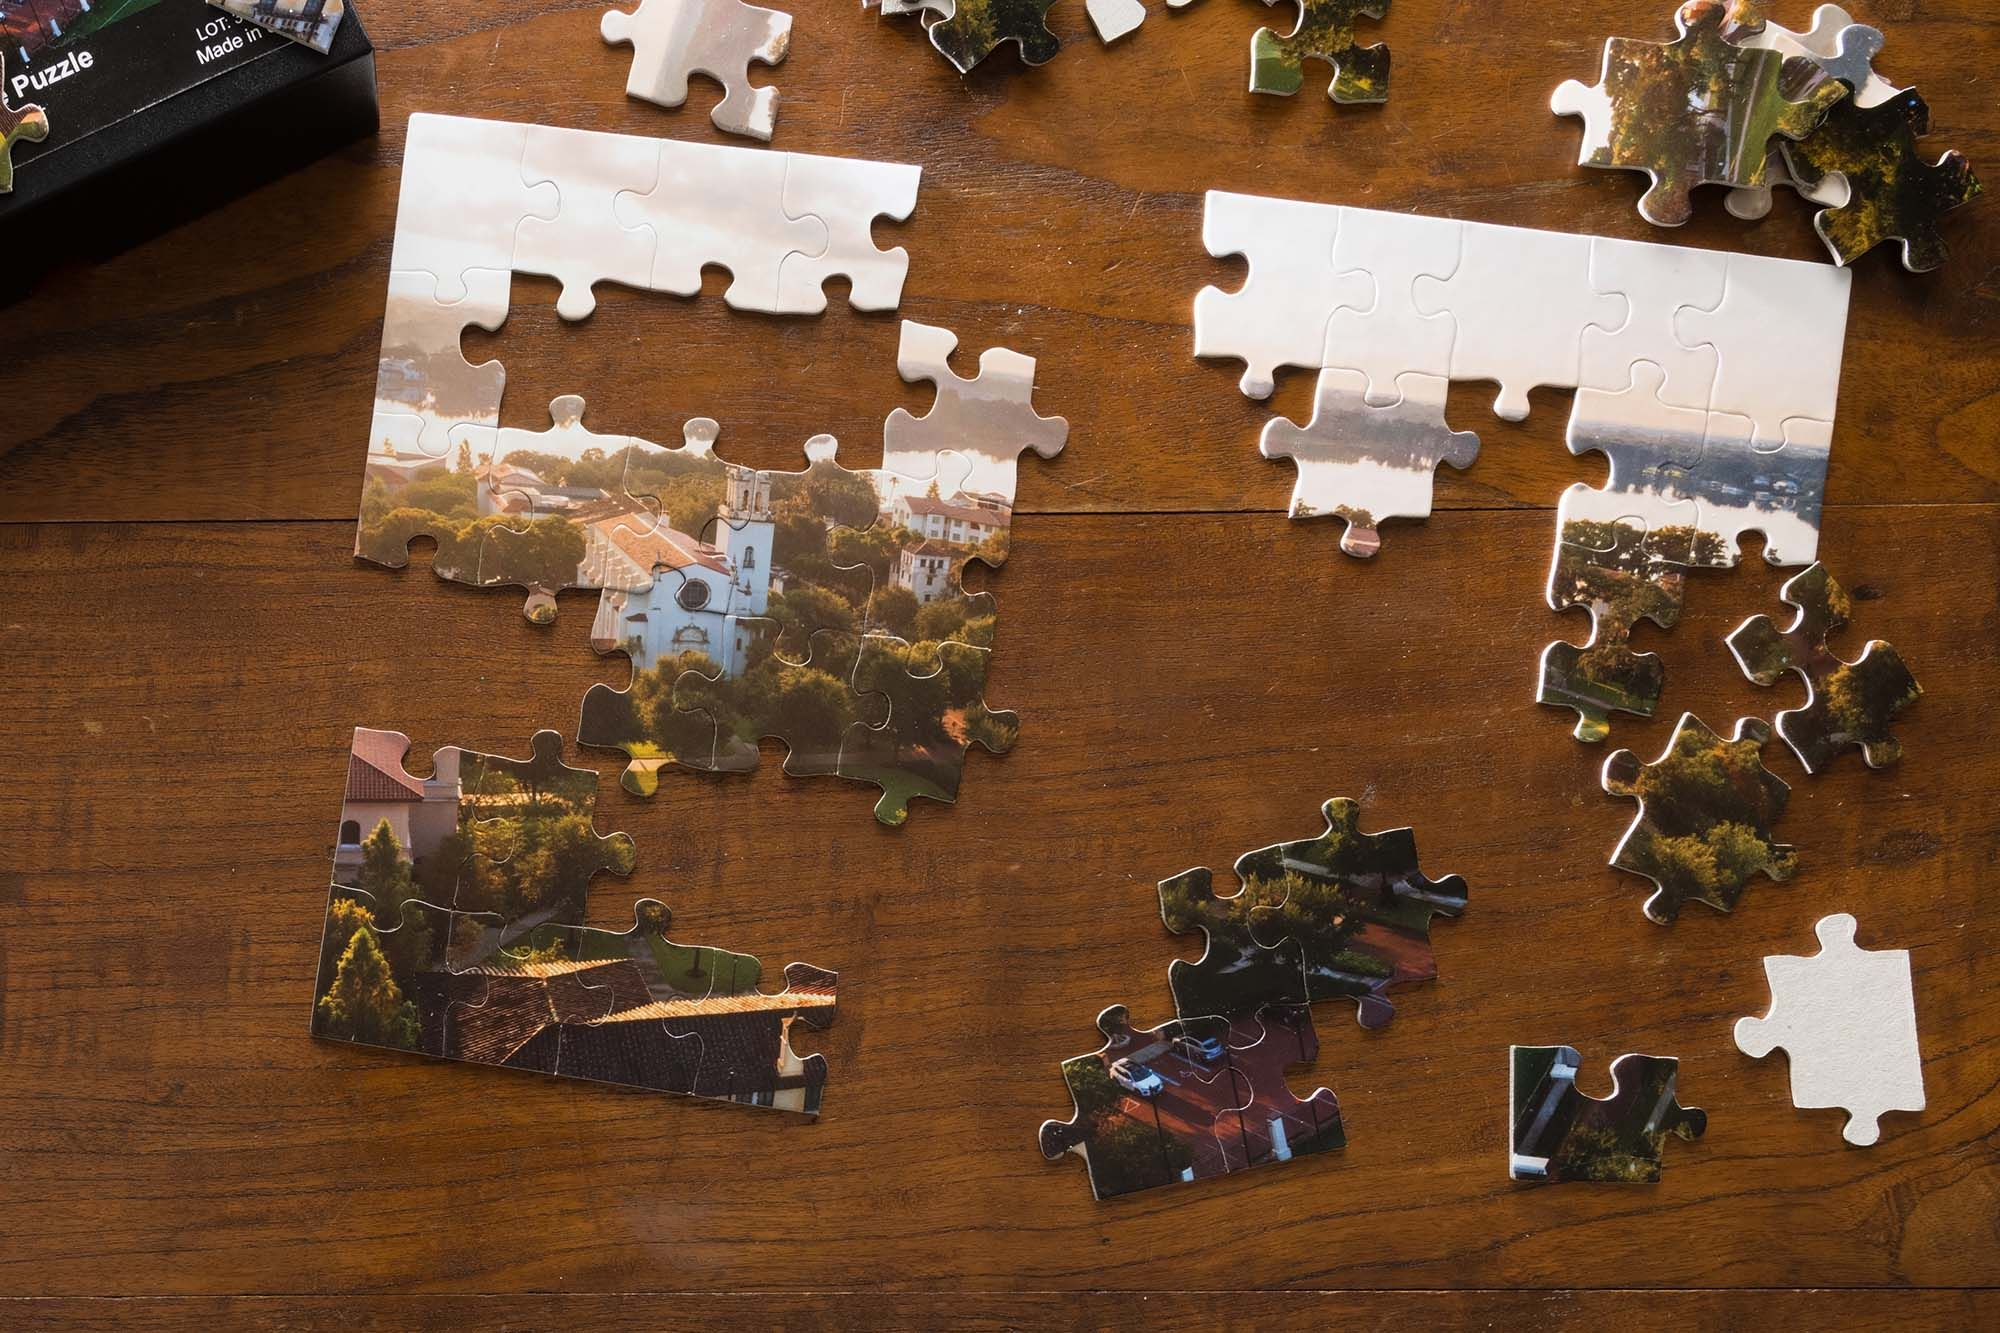 A half-completed puzzle featuring the Rollins campus